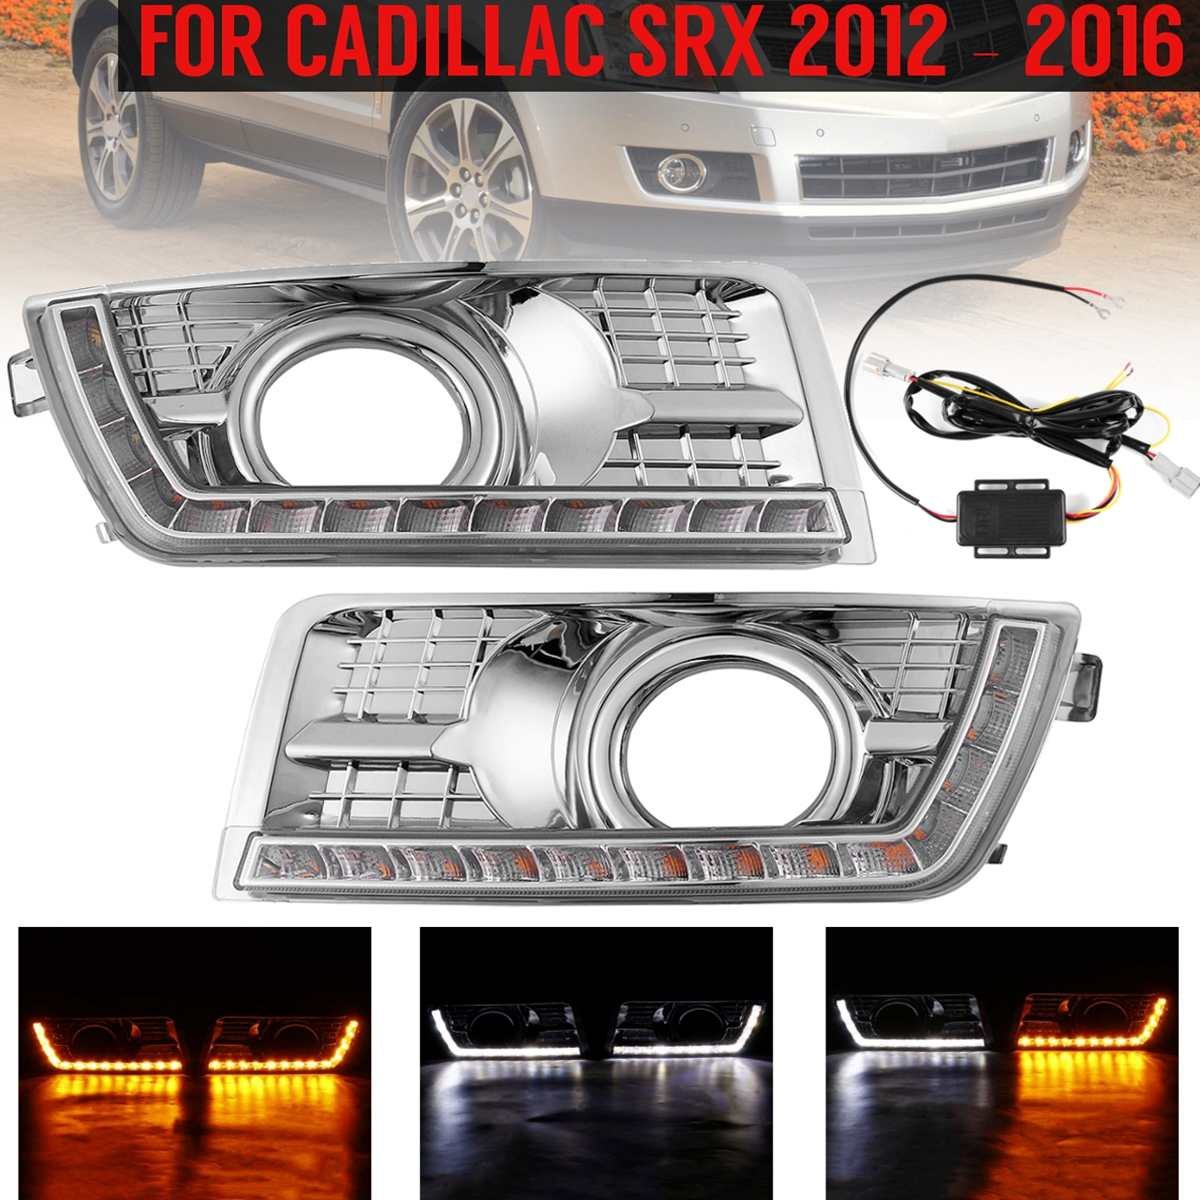 1 Pair Front Car Led Daytime Running Lights For Cadillac Srx 2012-2016 25778388 Flashing Drl Fog Lamp Turn Signal Light Styling1 Pair Front Car Led Daytime Running Lights For Cadillac Srx 2012-2016 25778388 Flashing Drl Fog Lamp Turn Signal Light Styling